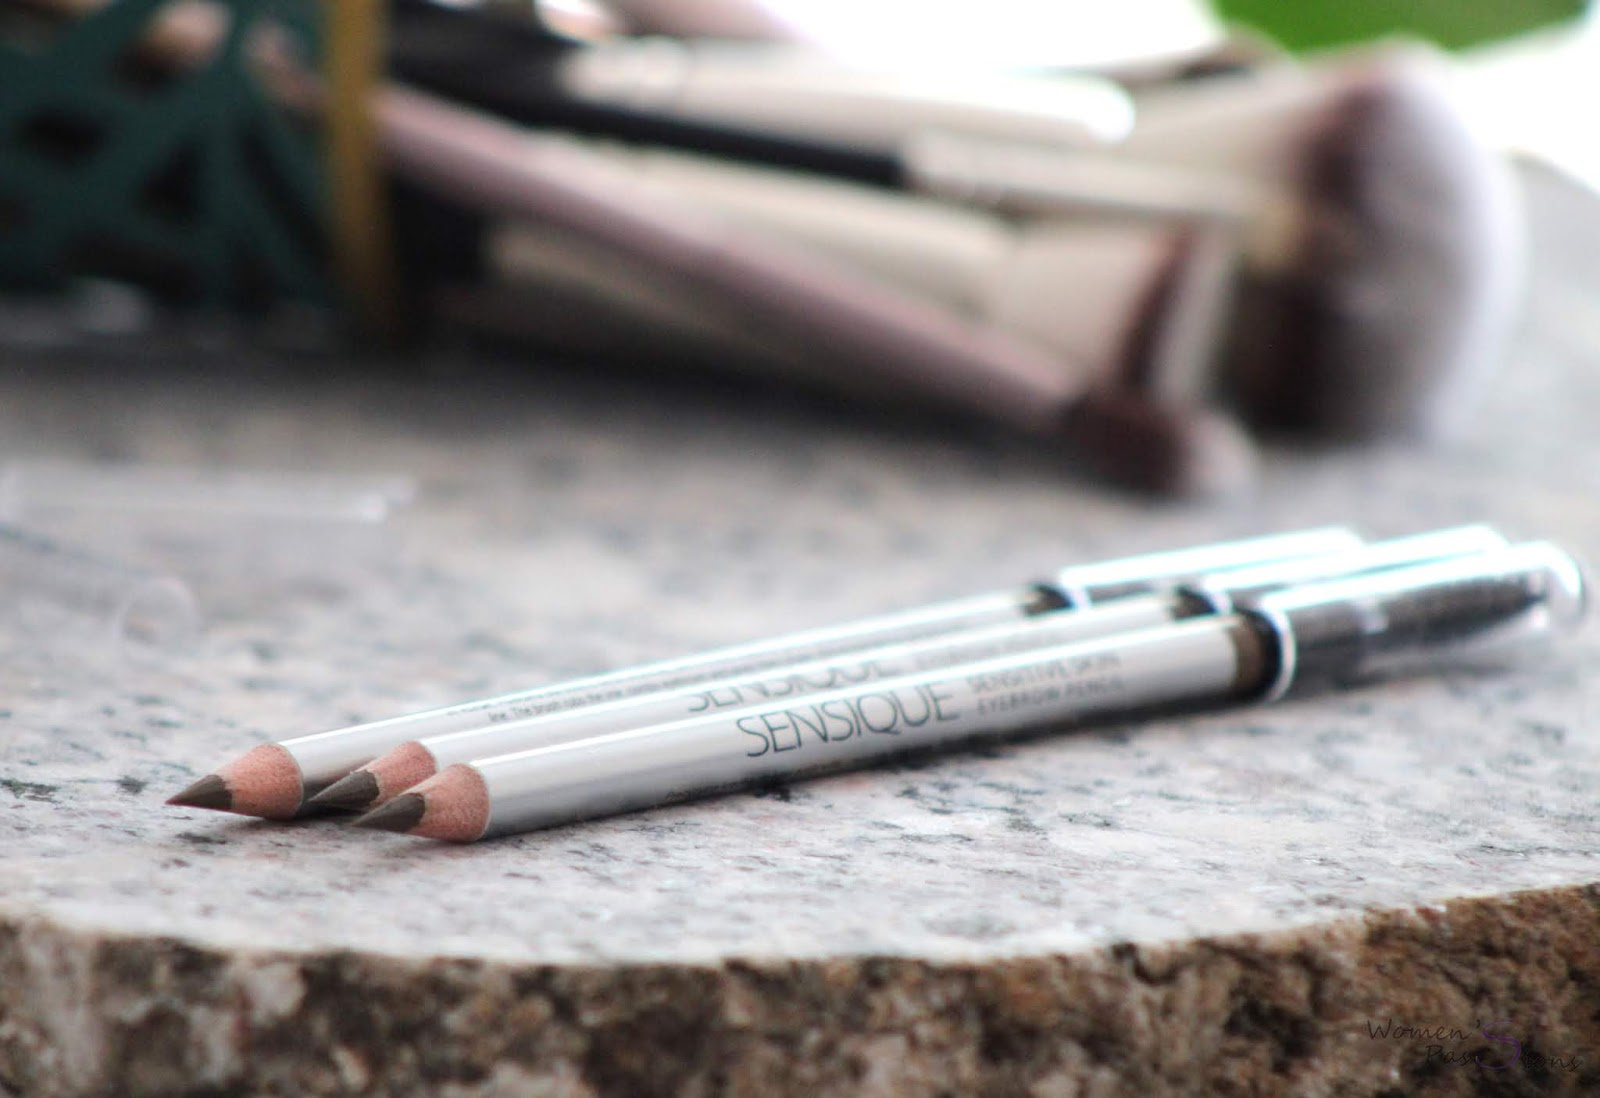 SENSIQUE Sensitive Skin Eyebrow Pencil